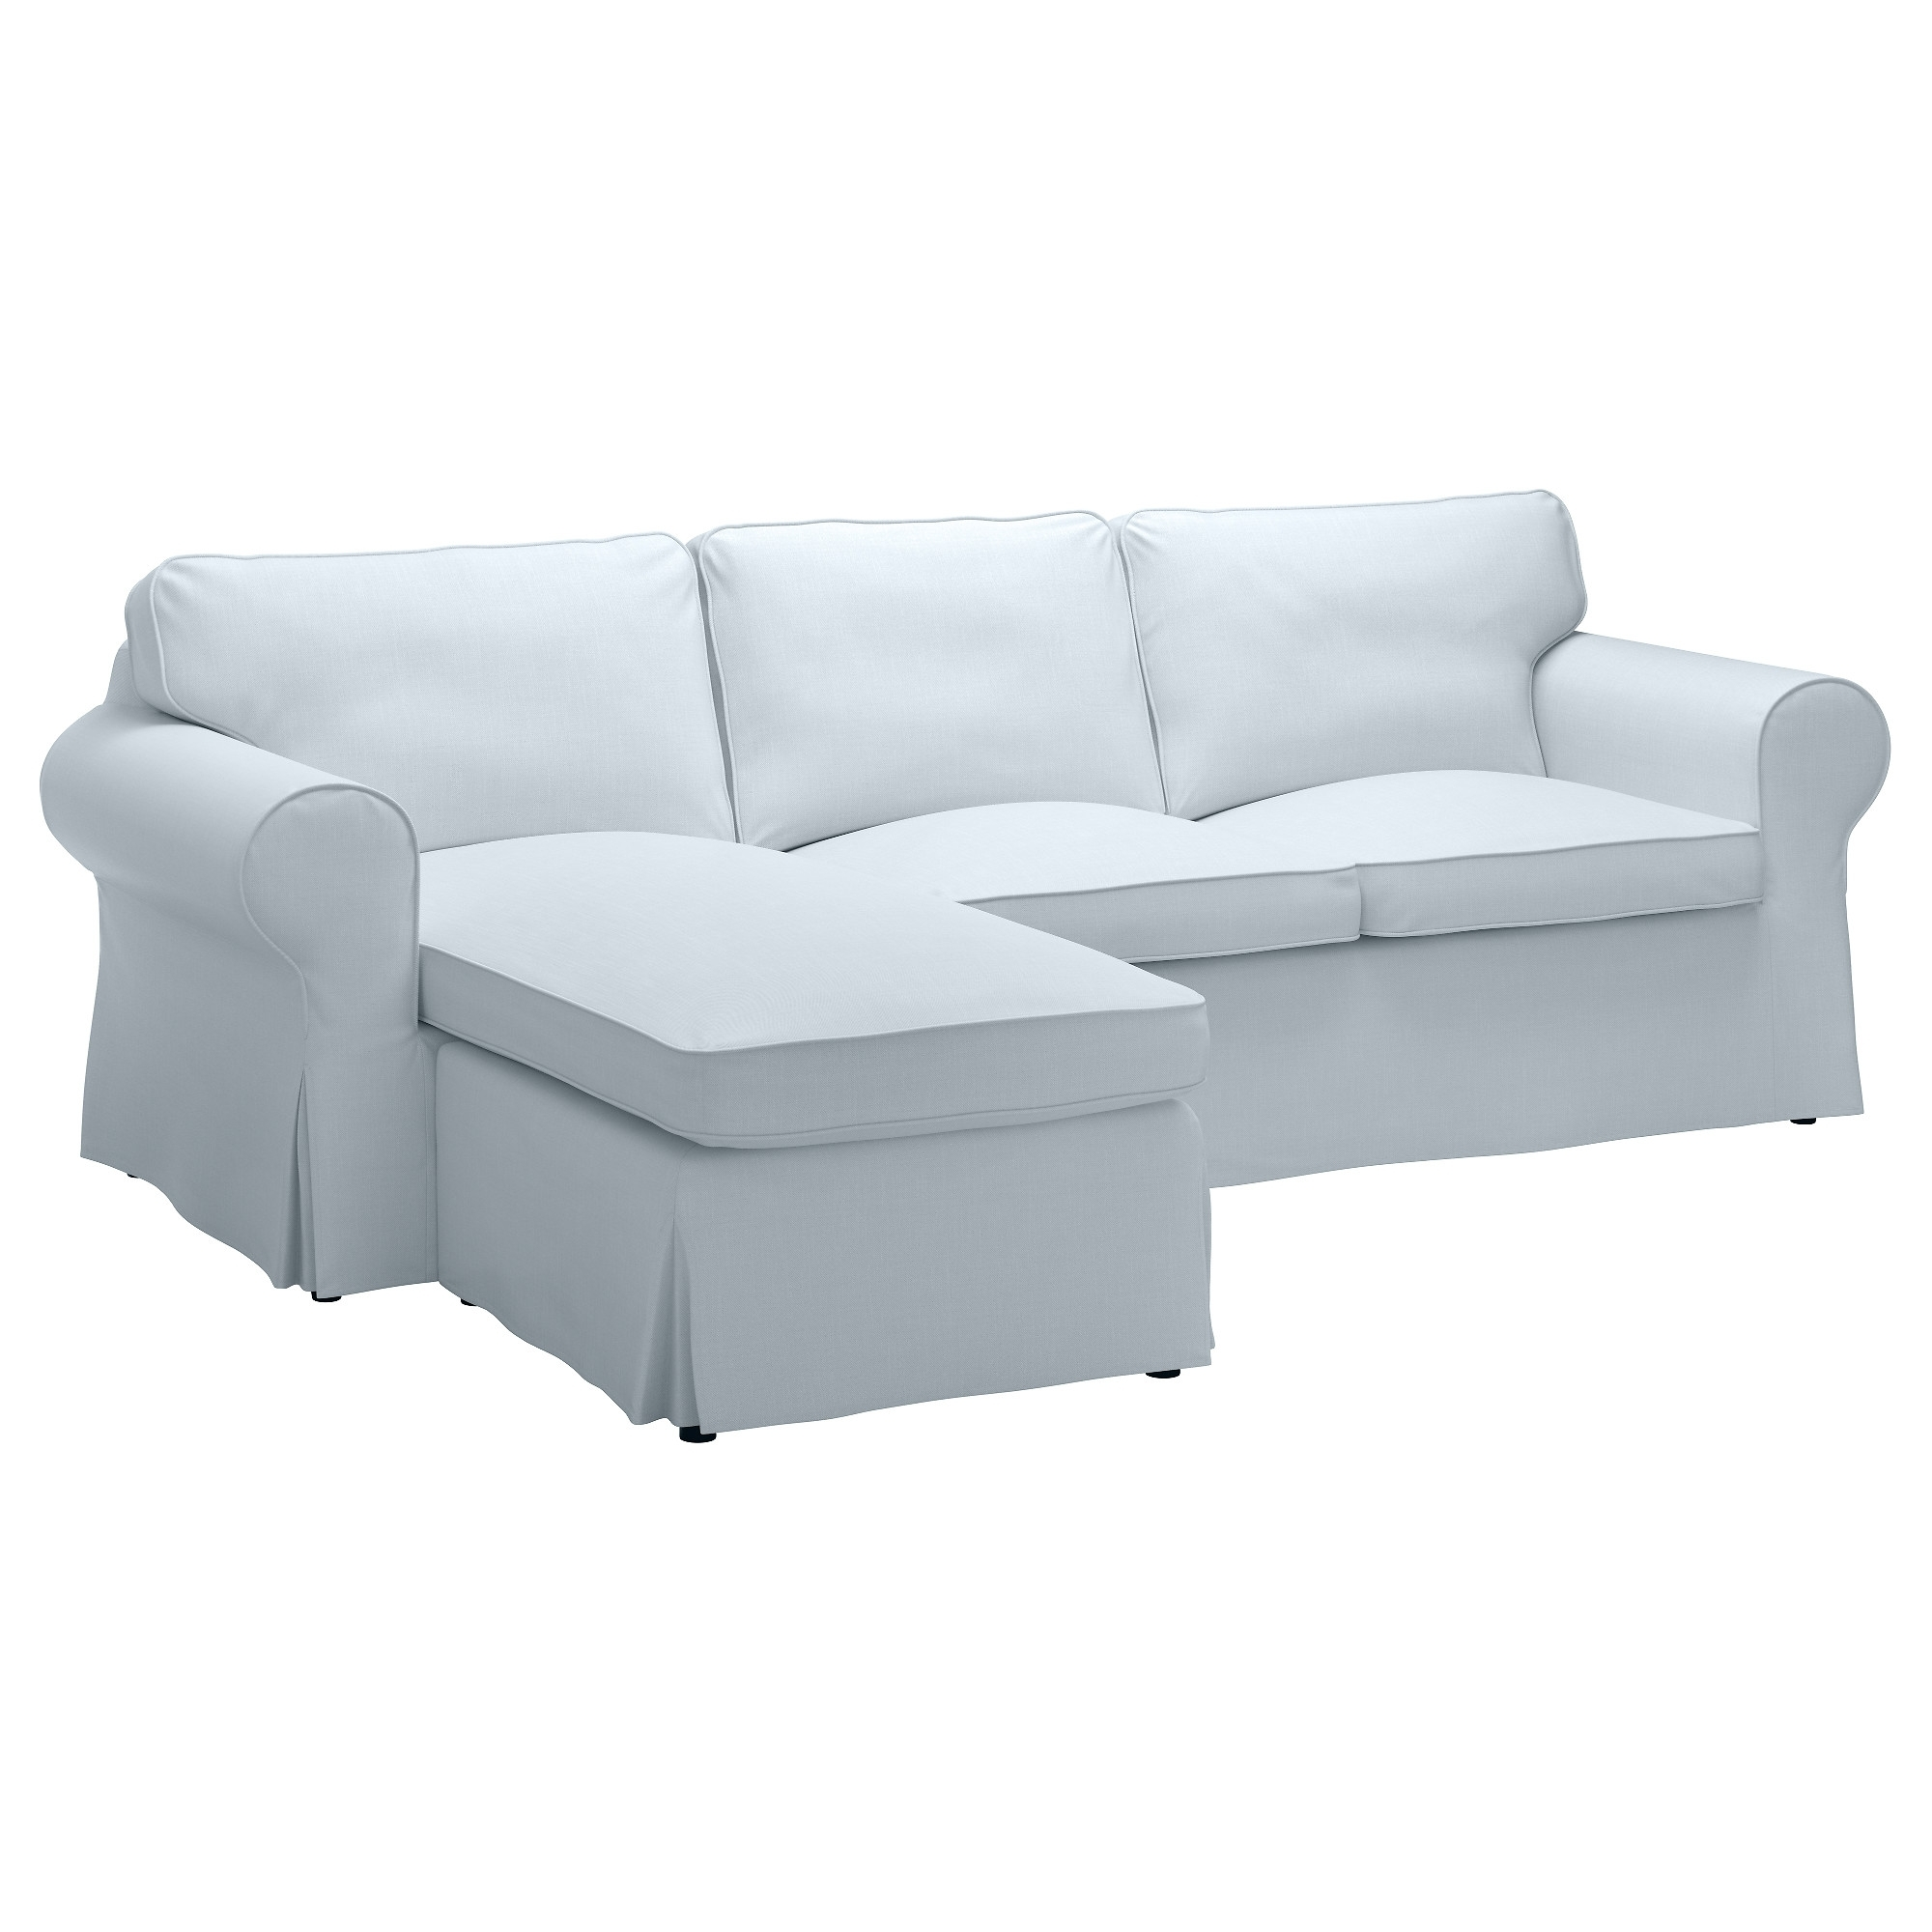 Small Sectional Sofa Ikea The Best Sectional Sofas At Ikea